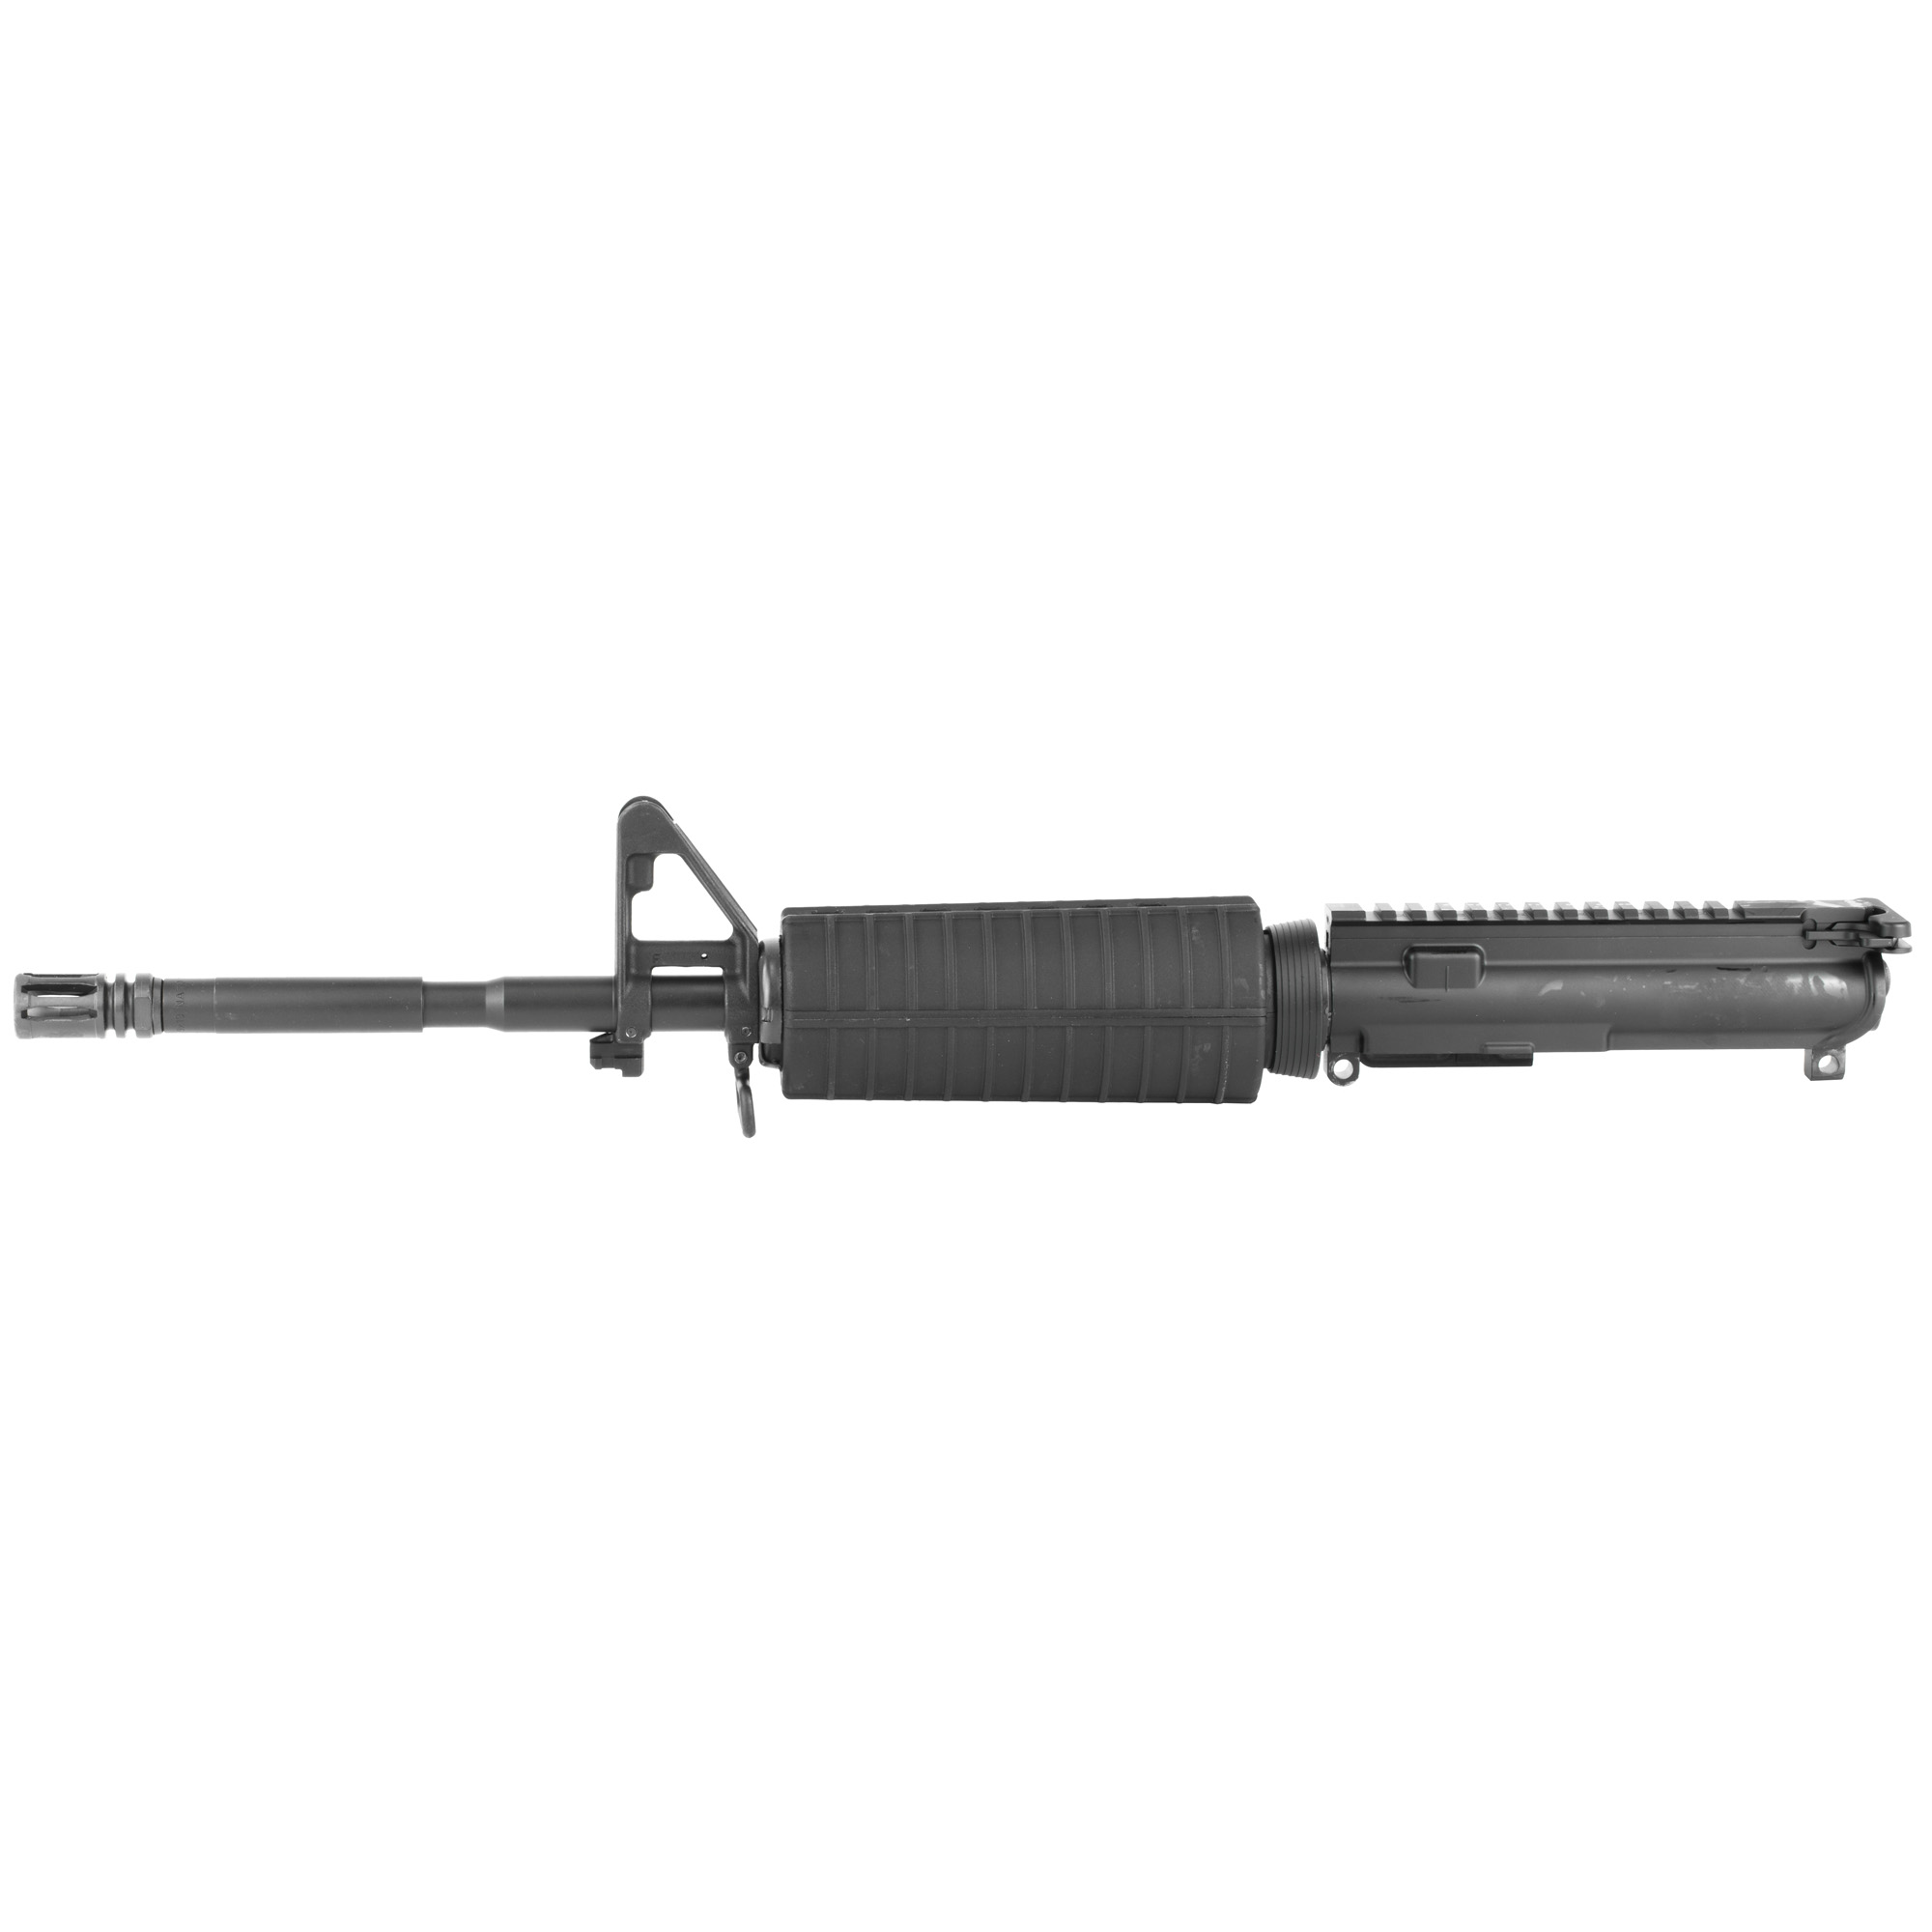 "Cmmg Upper 9mm M4a3 16"" Bird Cage"